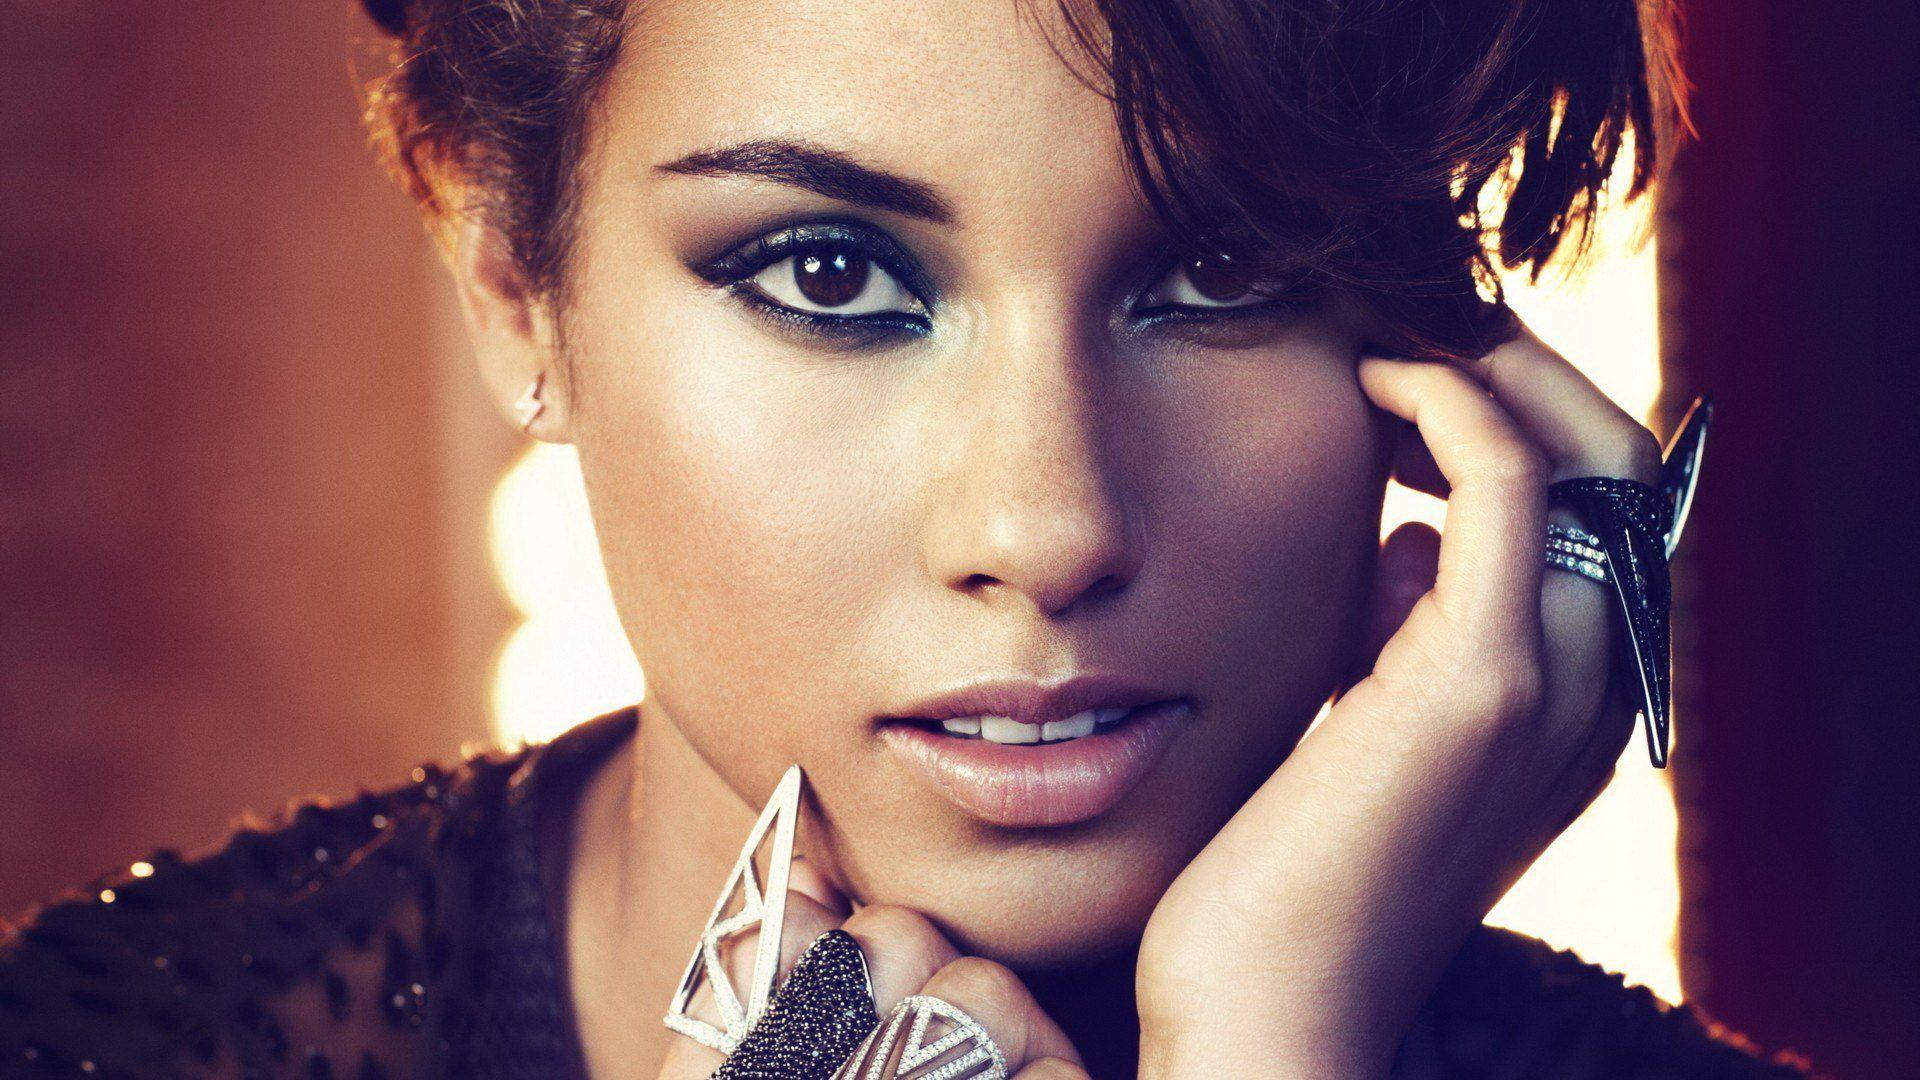 Alicia Keys Wallpaper #1 - Apnatimepass.com